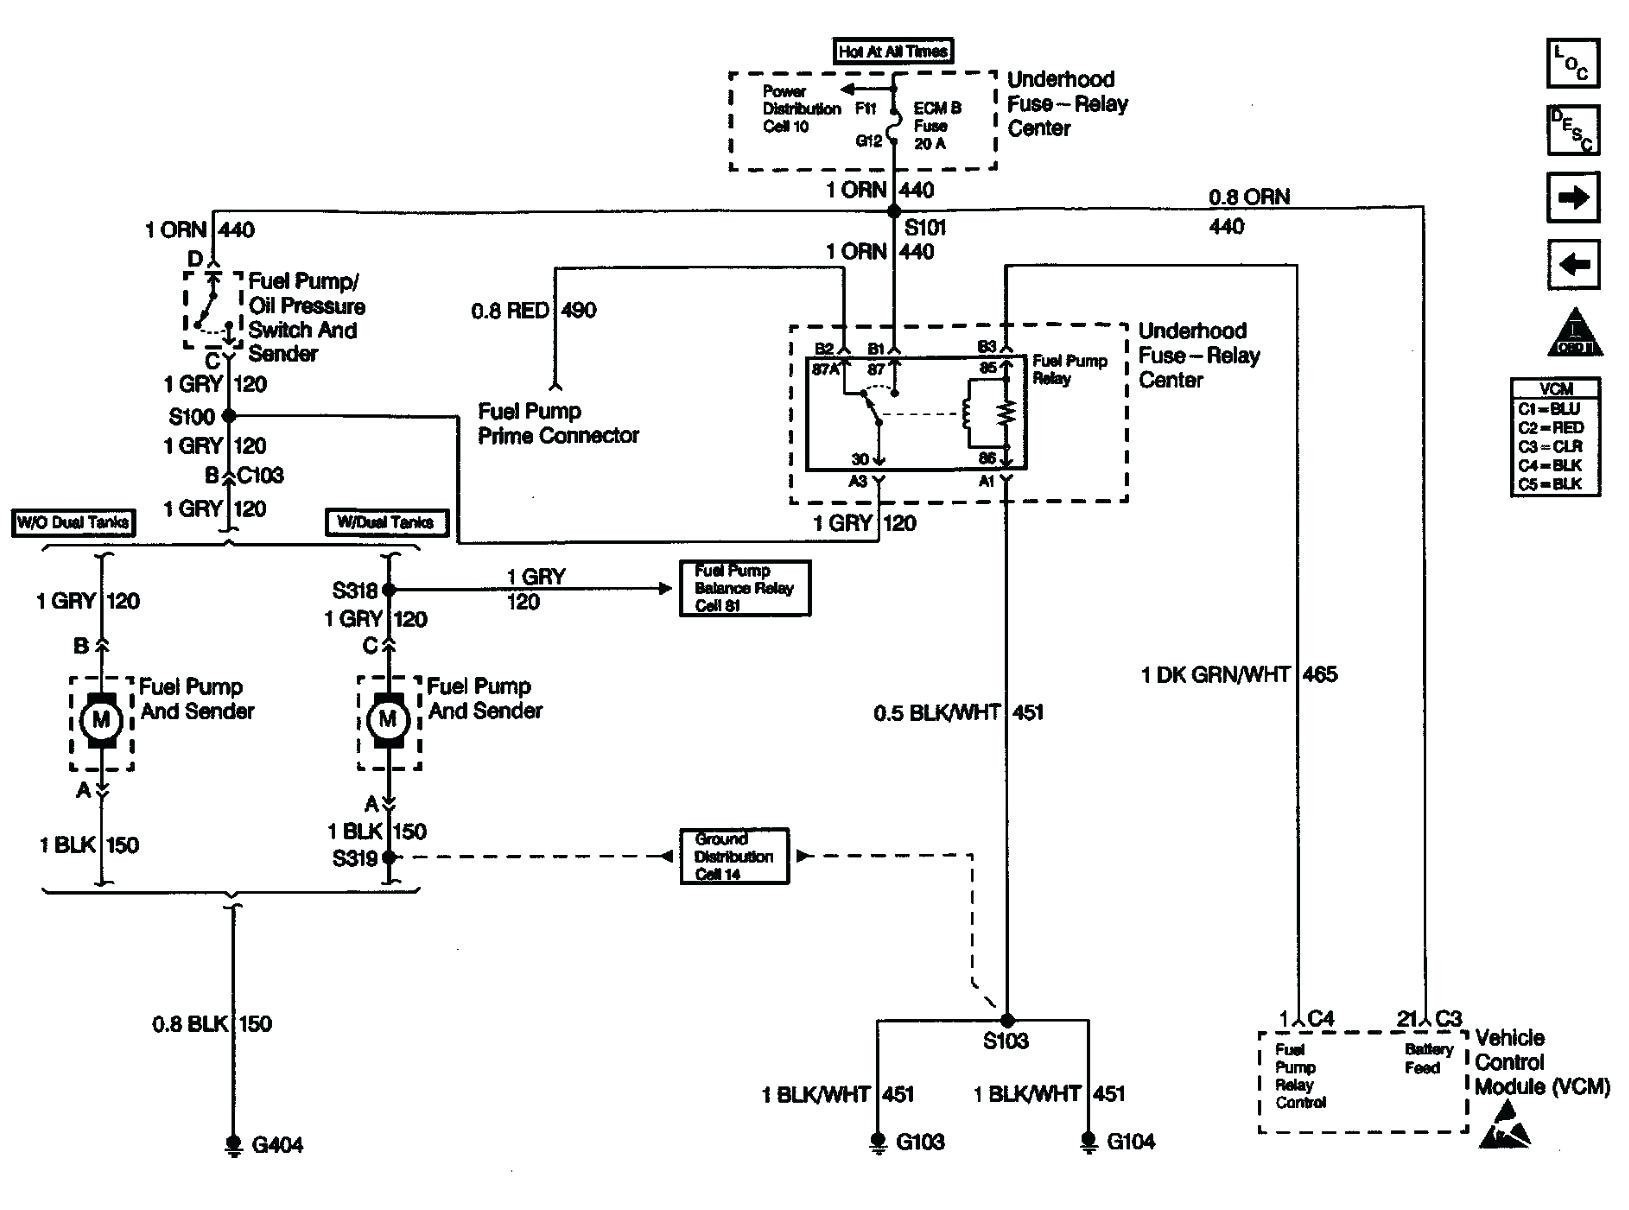 1997 Dodge Ram 1500 Wiring Diagram from static-resources.imageservice.cloud